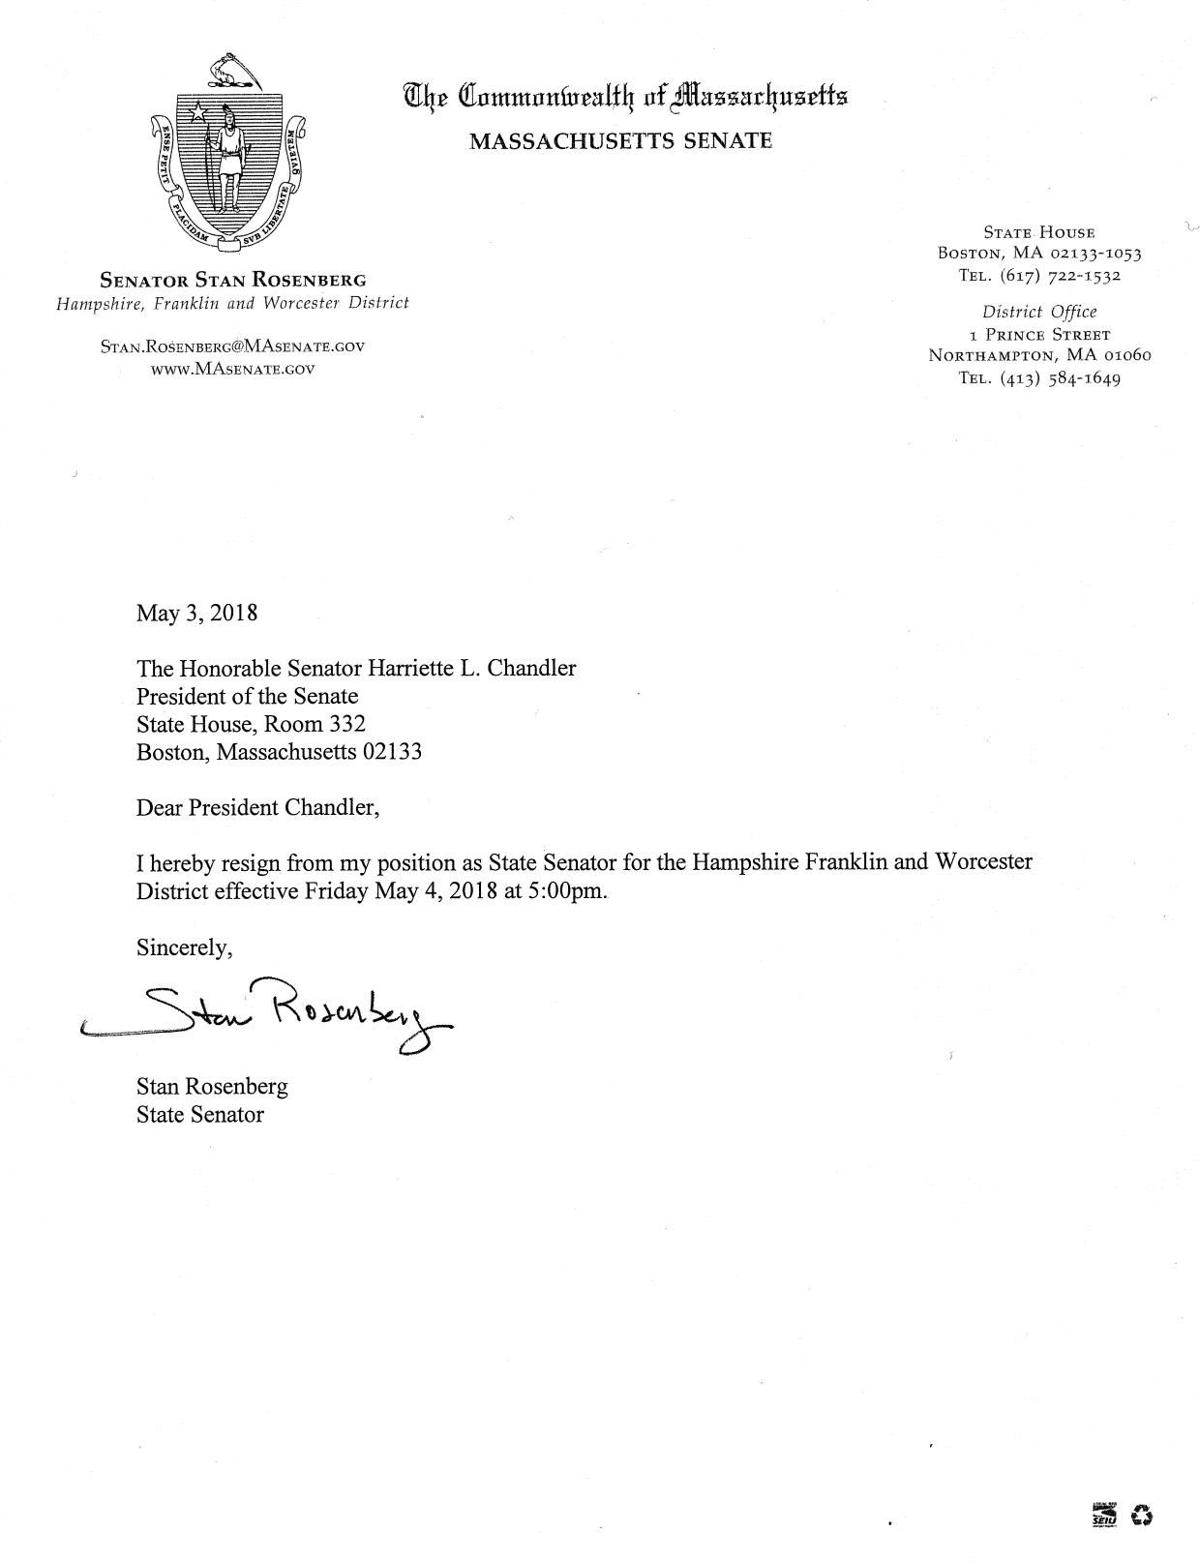 Rosenberg Resignation Letter Salemnews